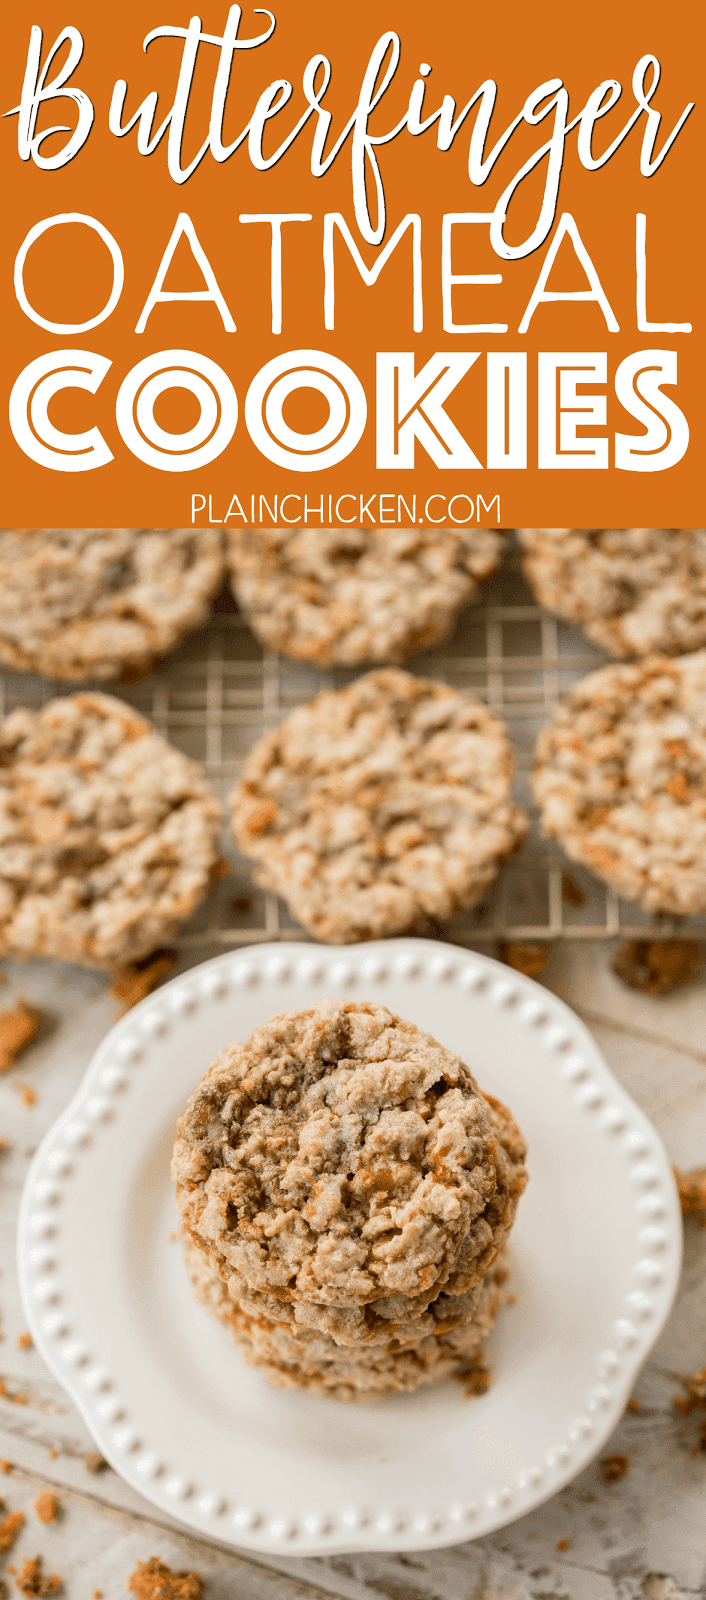 Butterfinger Oatmeal Cookies - seriously AMAZING cookies! Crispy on the outside and chewy on the inside. I had zero self-control around these cookies! ZERO!!! I ate WAY too many! Shortening, brown sugar, sugar, egg, water, vanilla, flour, salt, baking soda, quick-cook oats and Butterfinger baking bits. TO-DIE-FOR!! Make these ASAP!